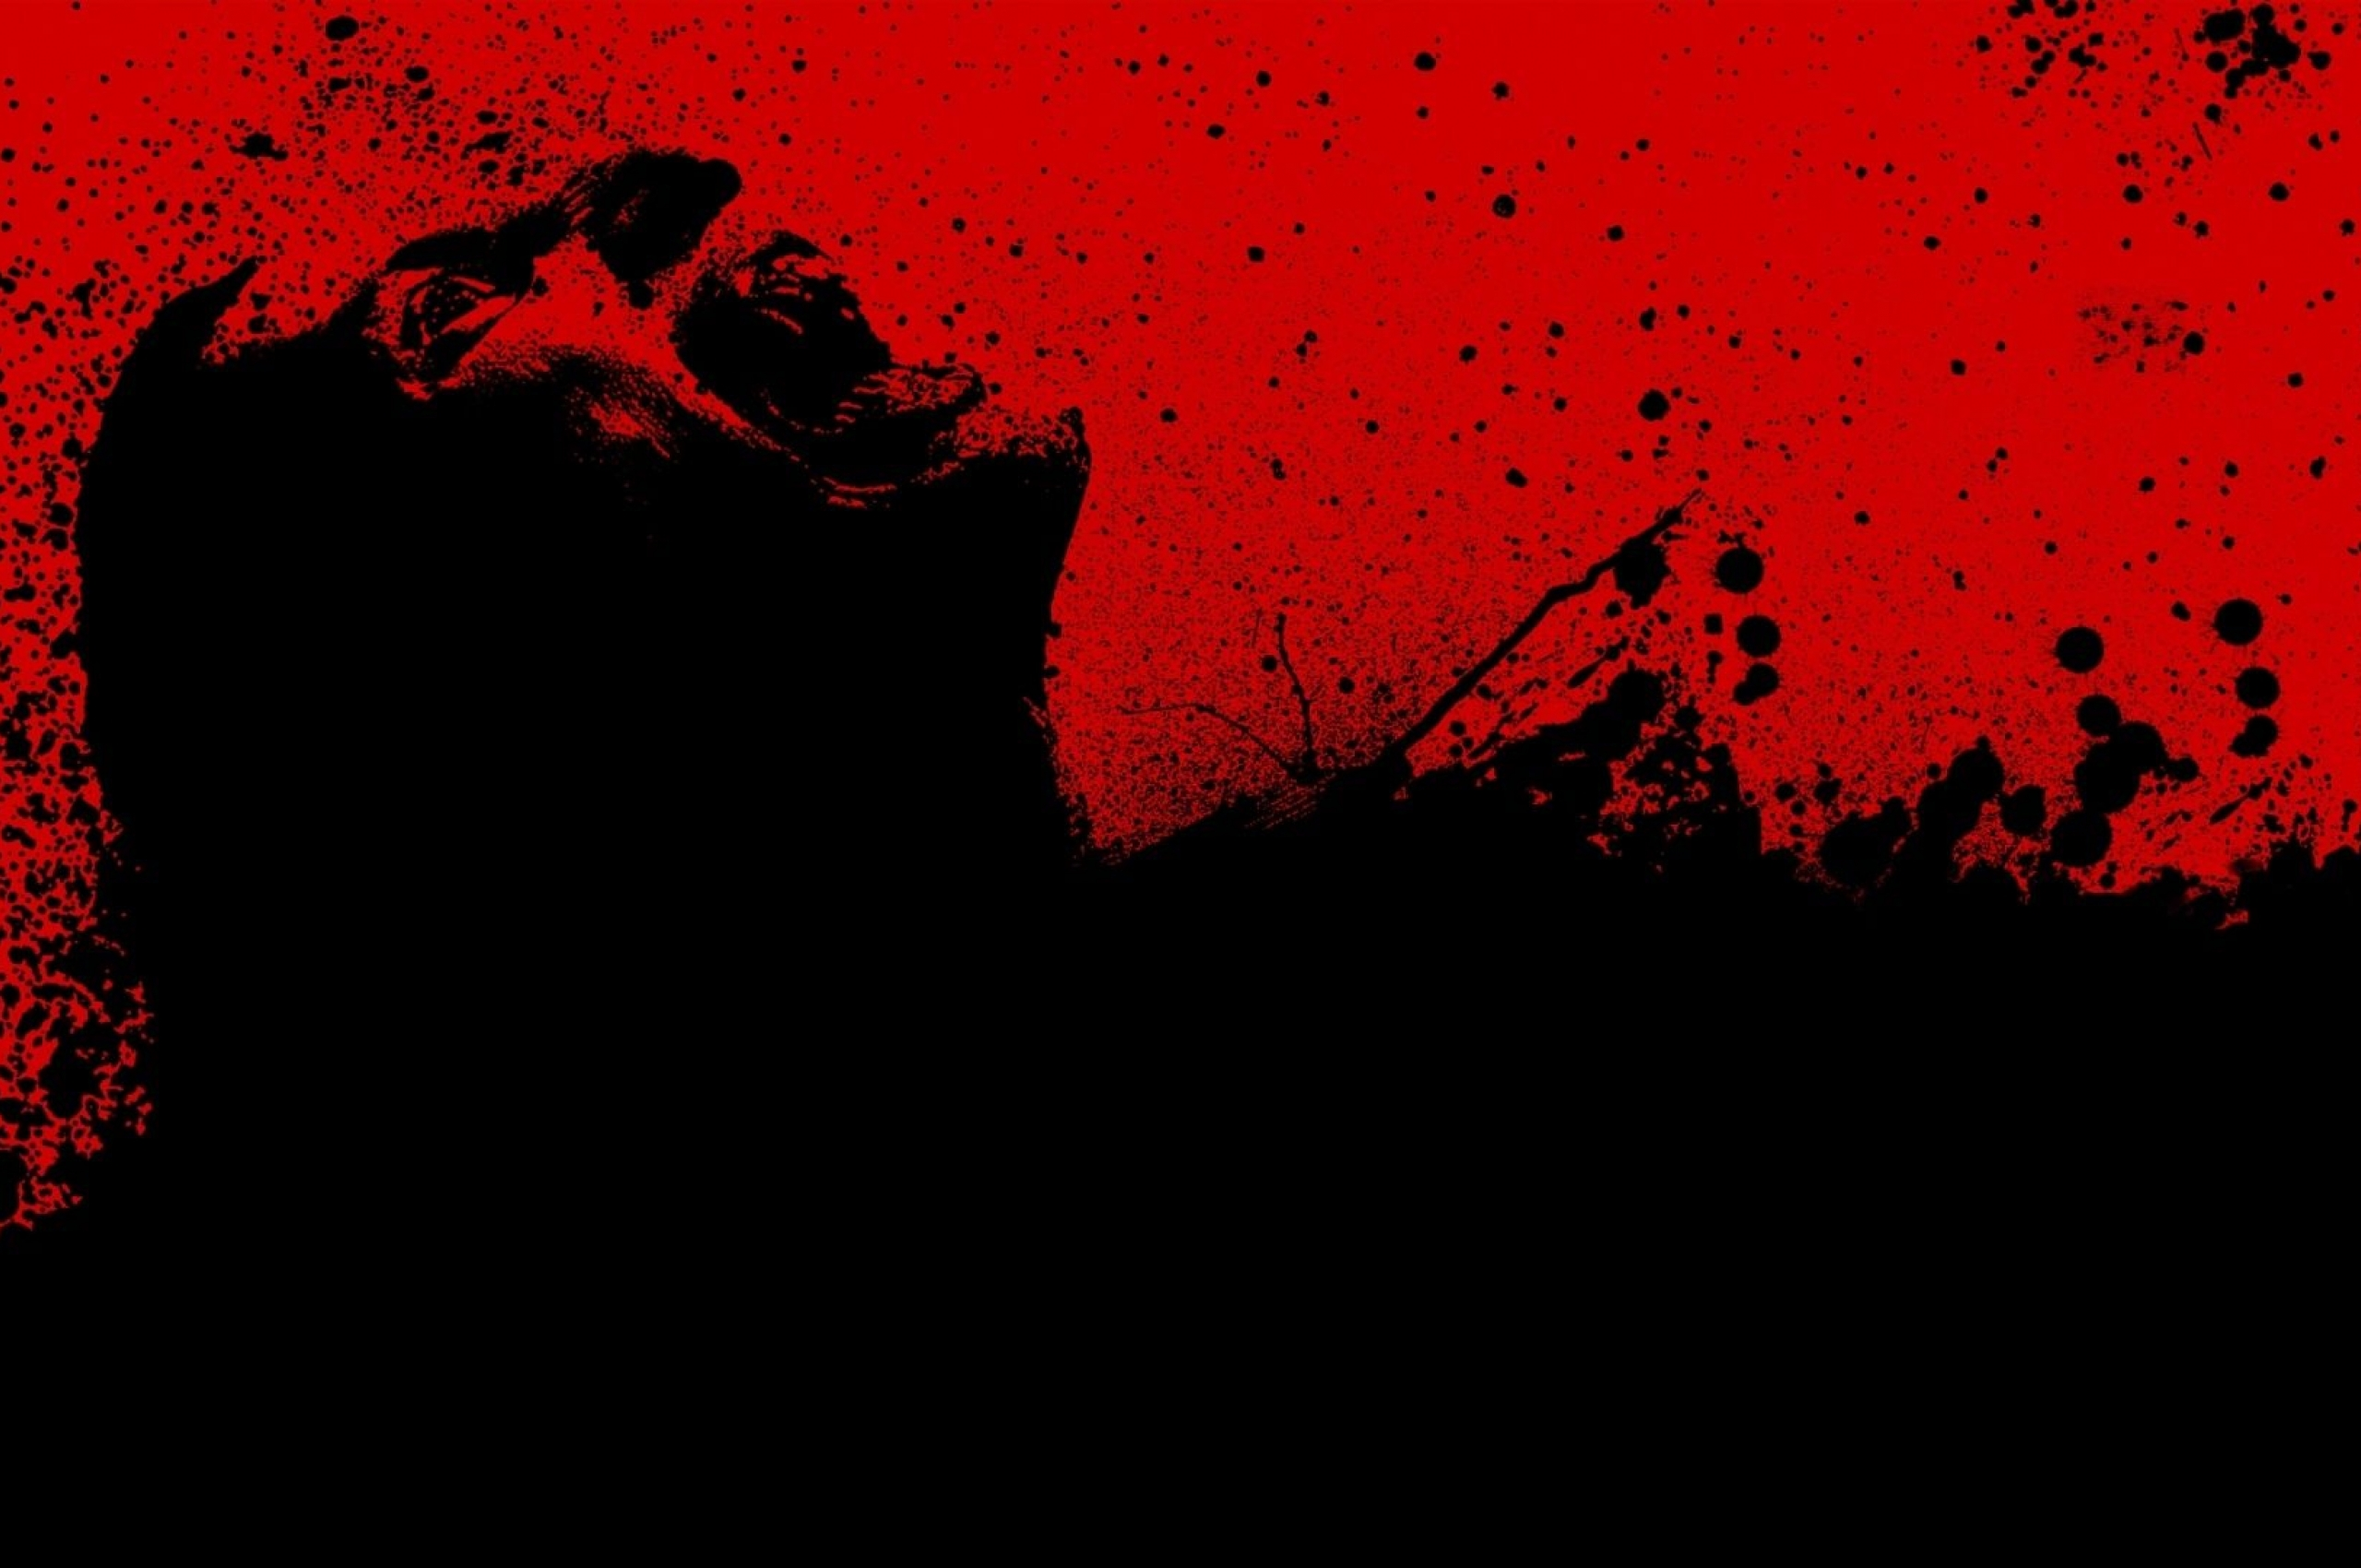 download 30 days of night Red Black Blood Wallpaper 2560x1700